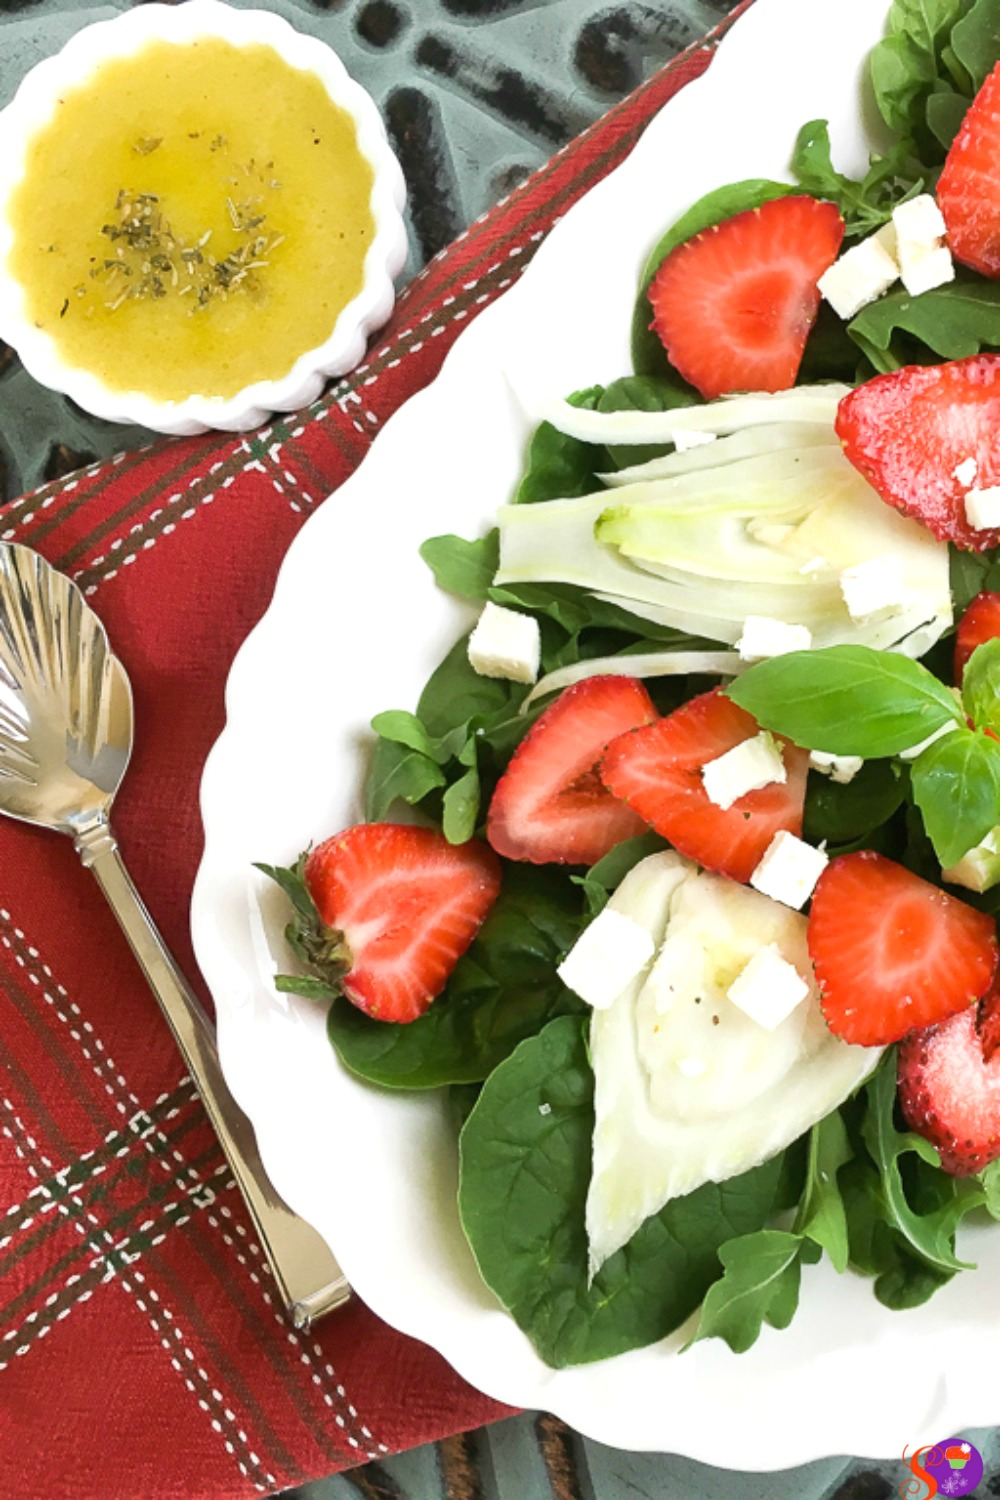 This beautiful Spinach, Strawberry and Fennel Salad with Balsamic Vinaigrette is quick and easy to prepare. It comes together in just 15 minutes, which makes it perfect for lunch or even those busy weeknight meals.